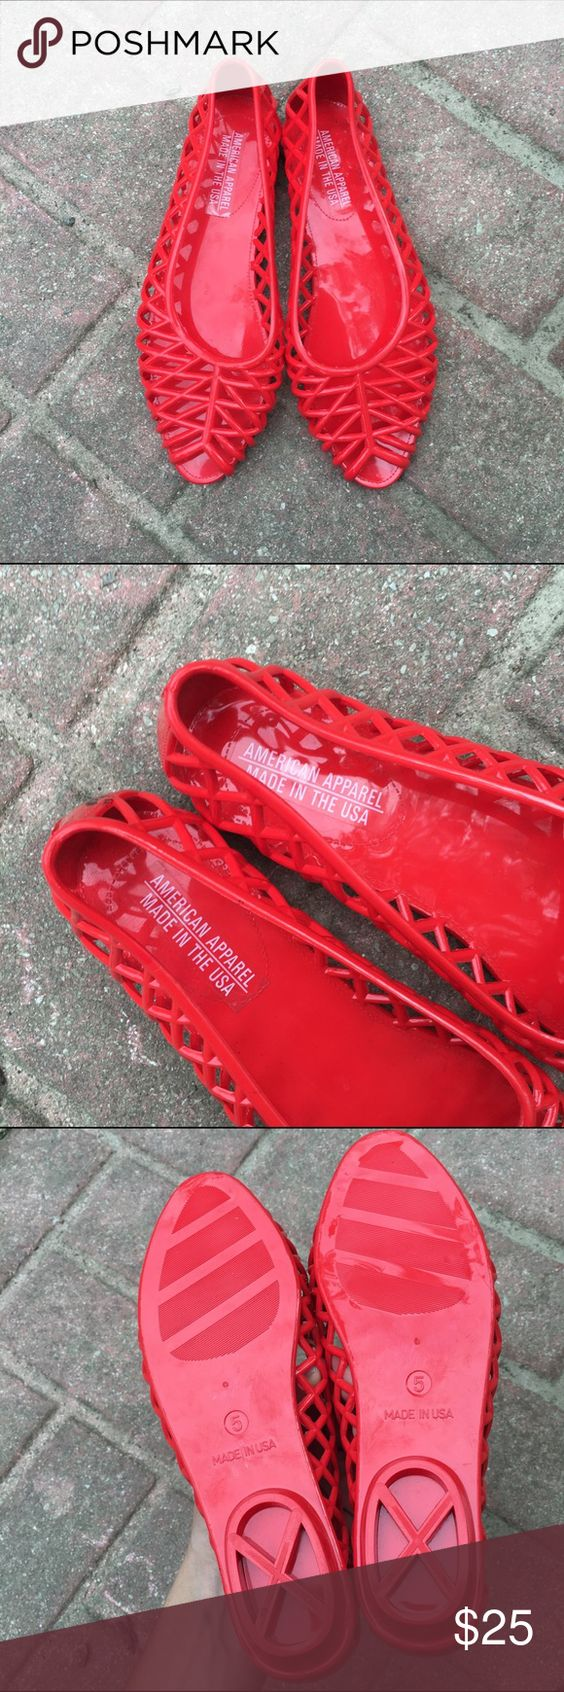 NEW American Apparel Jelly Flats Literally brand new just took the tags off. Size 5 from American Apparel. Super cute, red jelly flats. Perfect summer shoe!! American Apparel Shoes Flats & Loafers